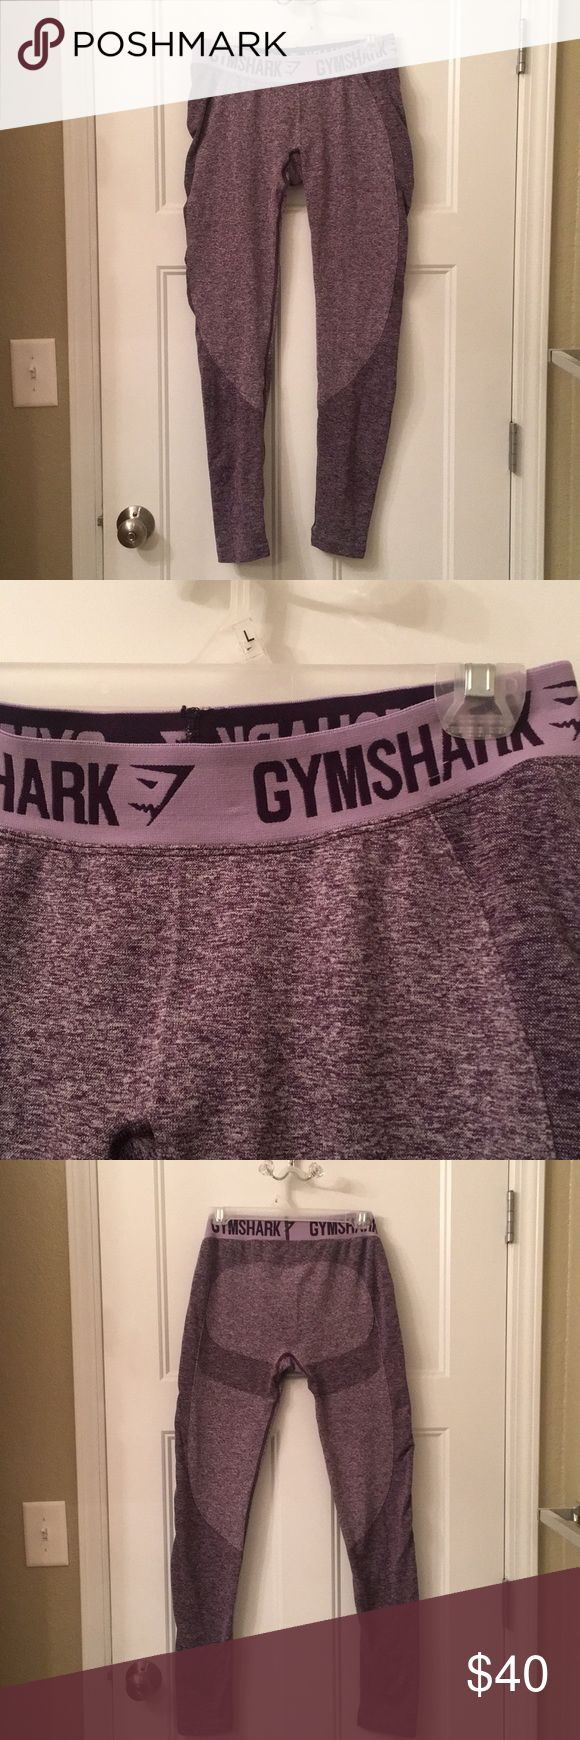 Gymshark Pants Only worn once  Amazing condition! Gymshark Pants